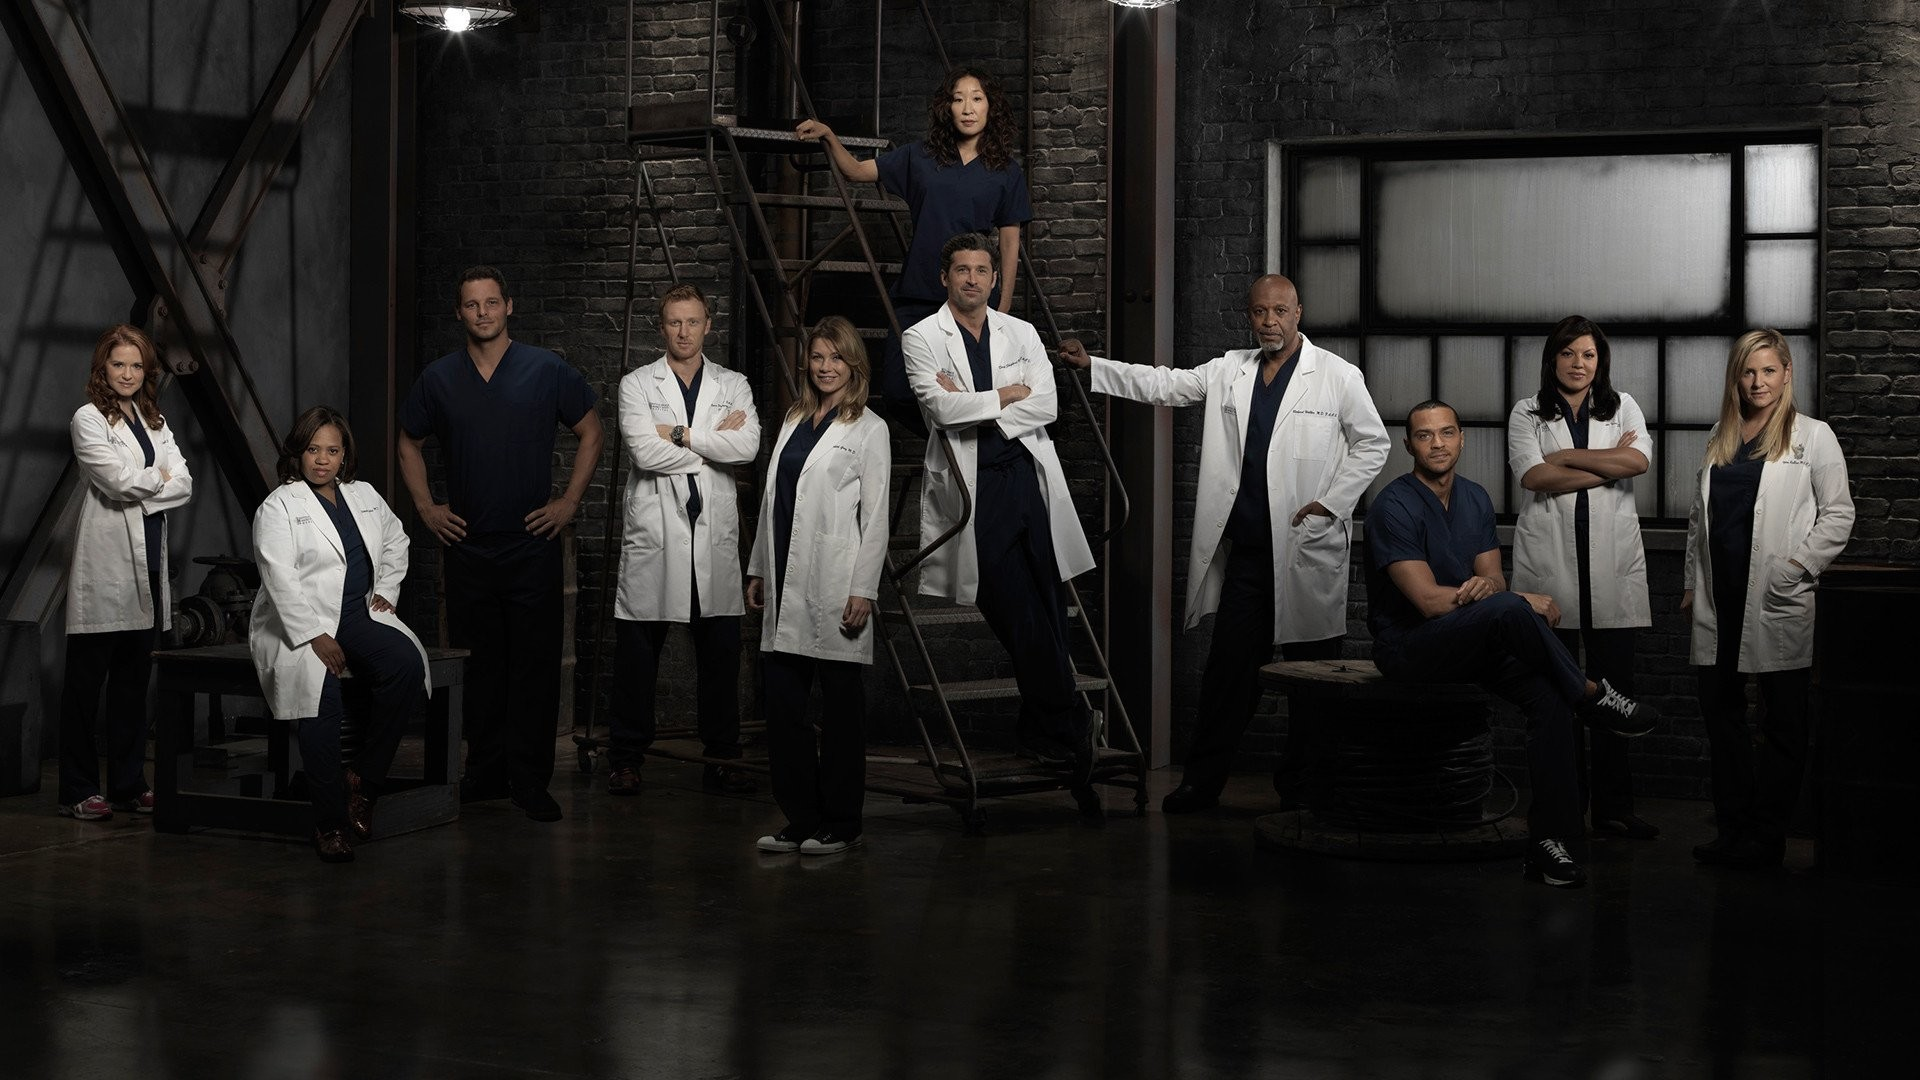 Greys Anatomy HD Wallpapers 79 images 1920x1080